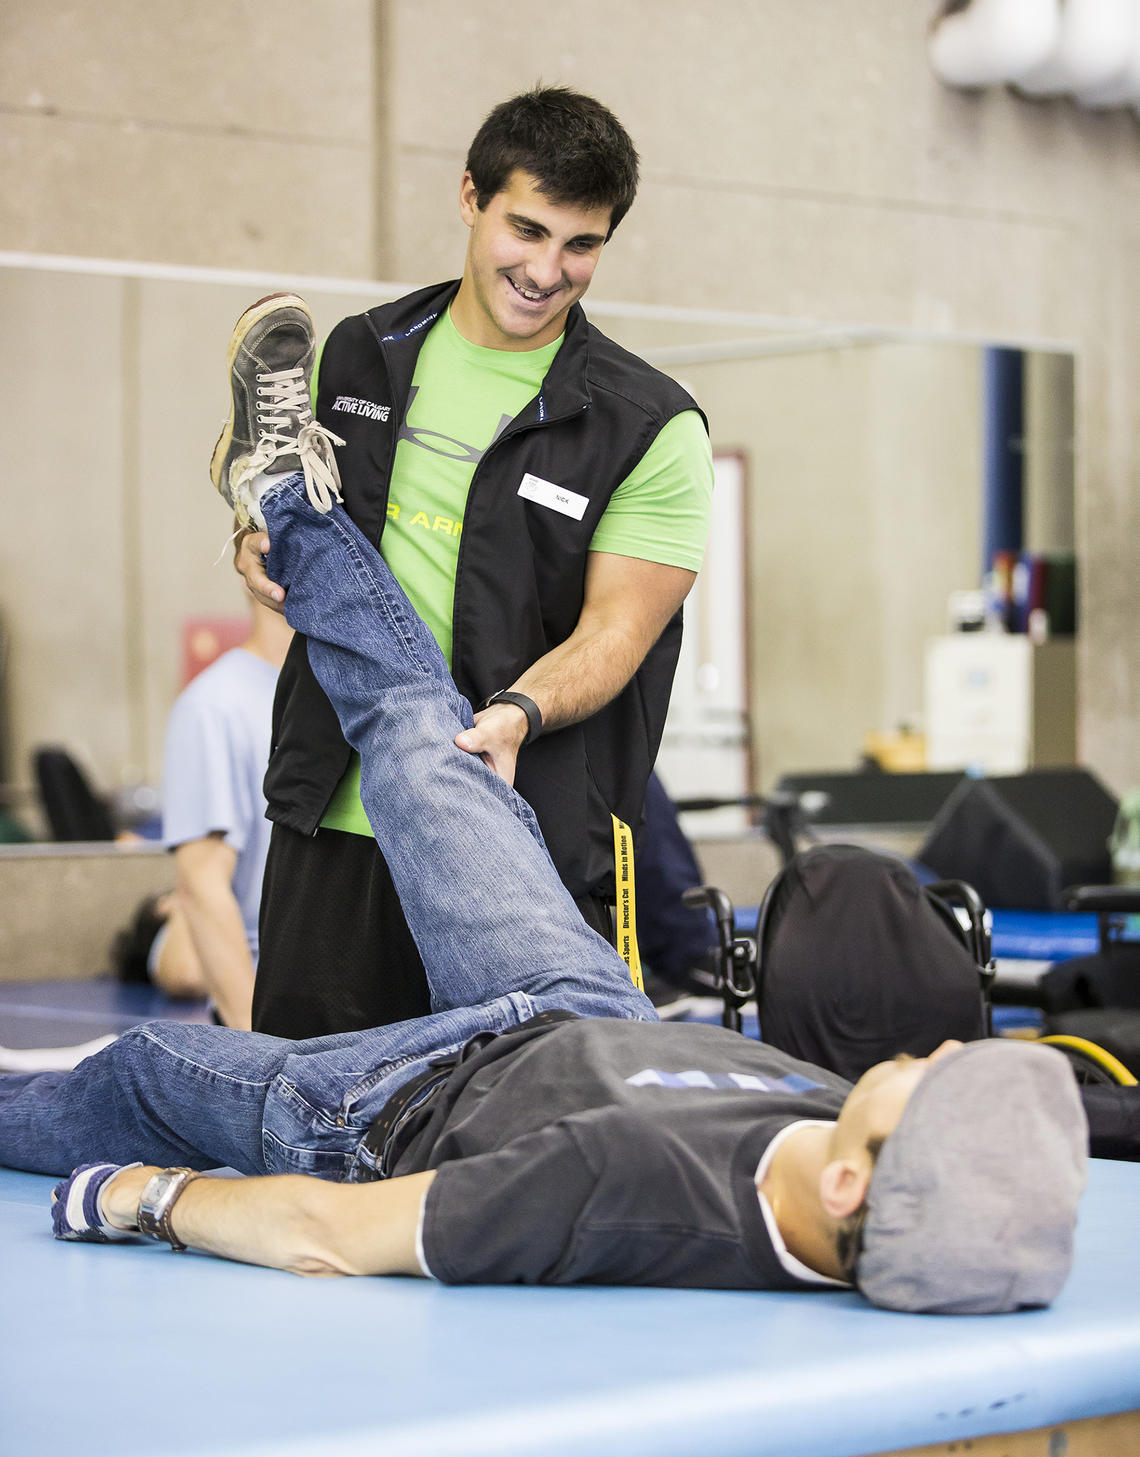 UCalgary Rehab fitness client has his mobility session with trainer